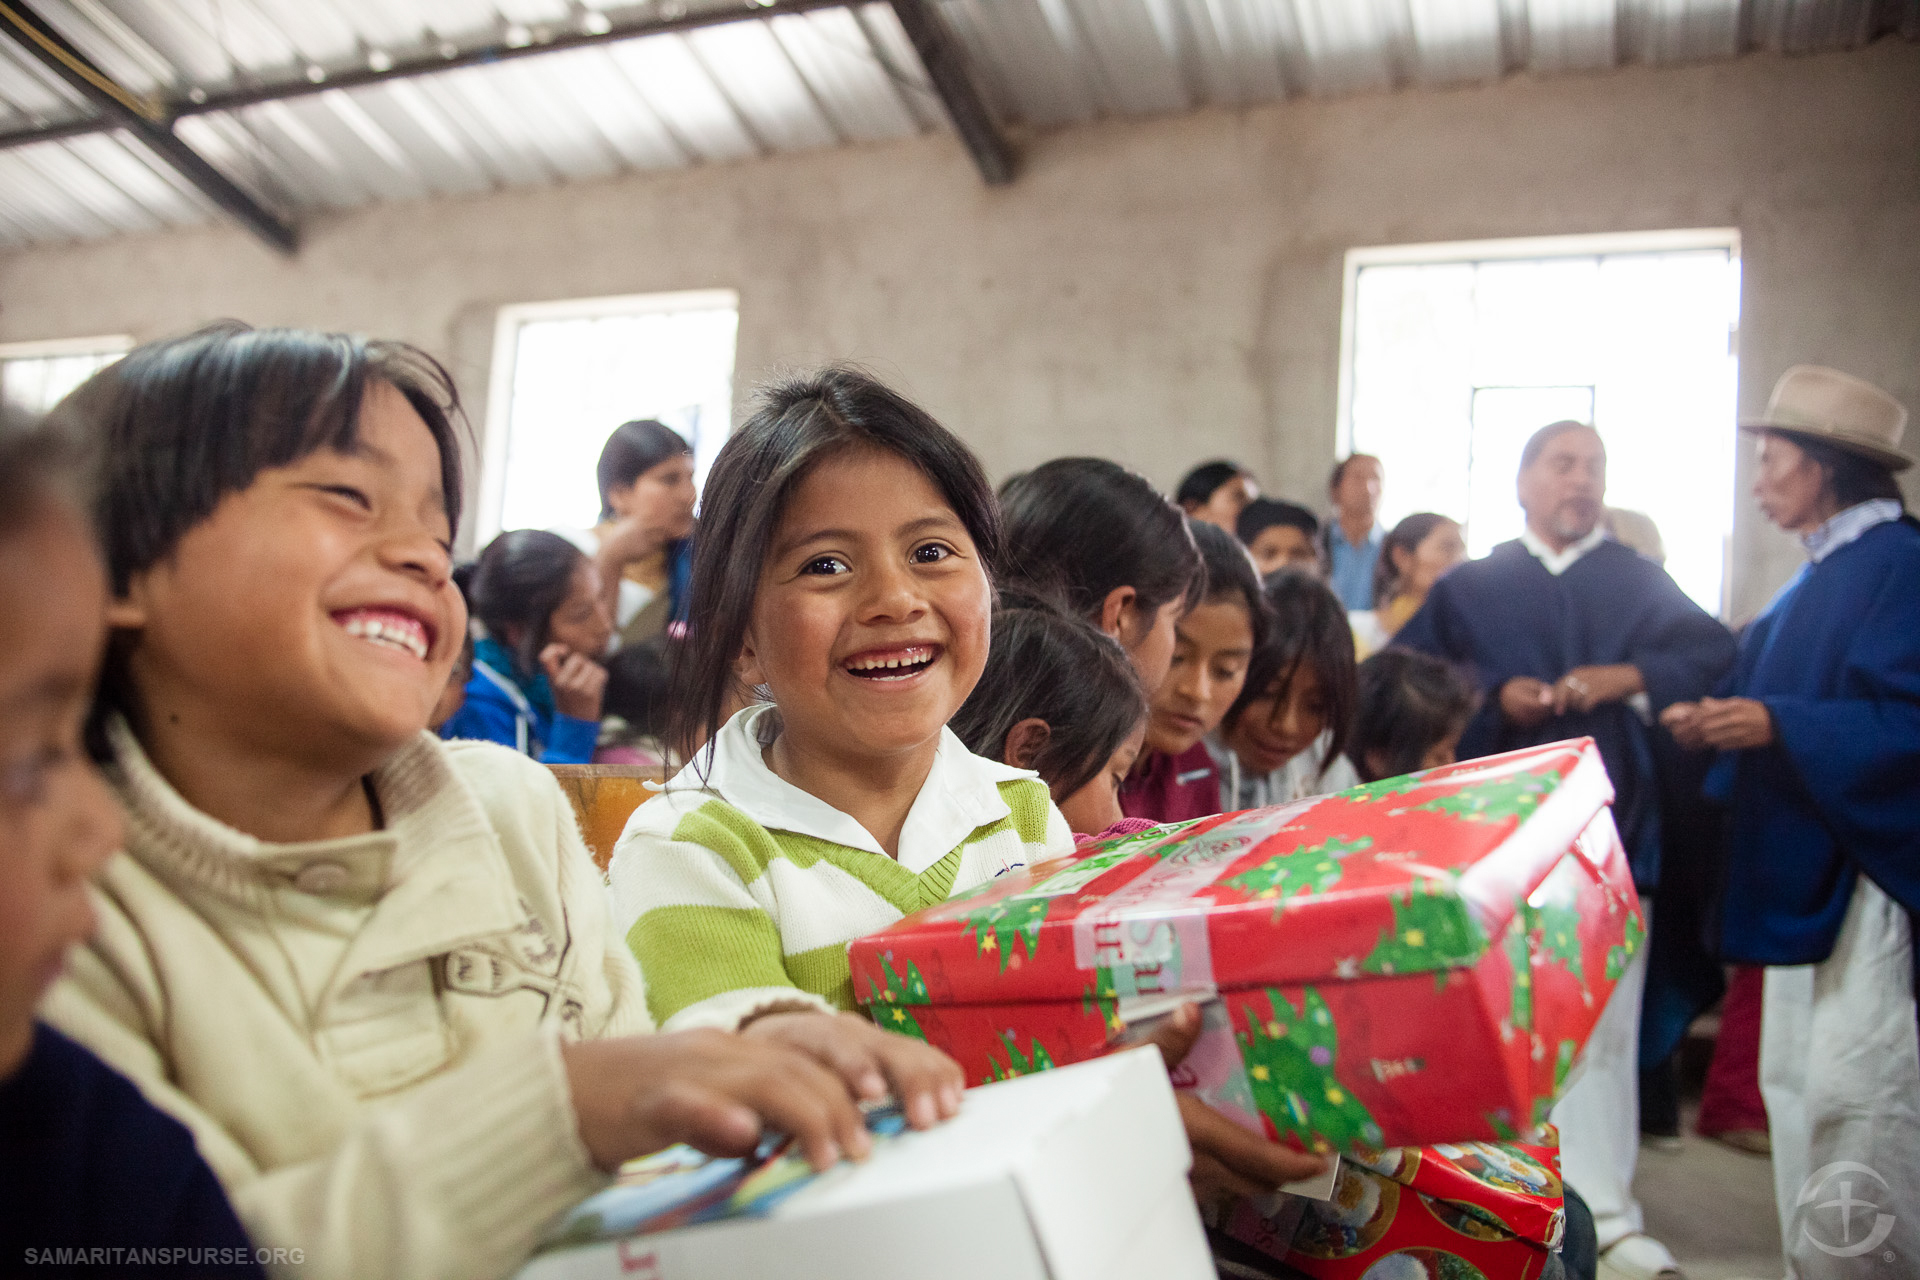 Children eagerly await the moment they are told to open their shoe box gifts.